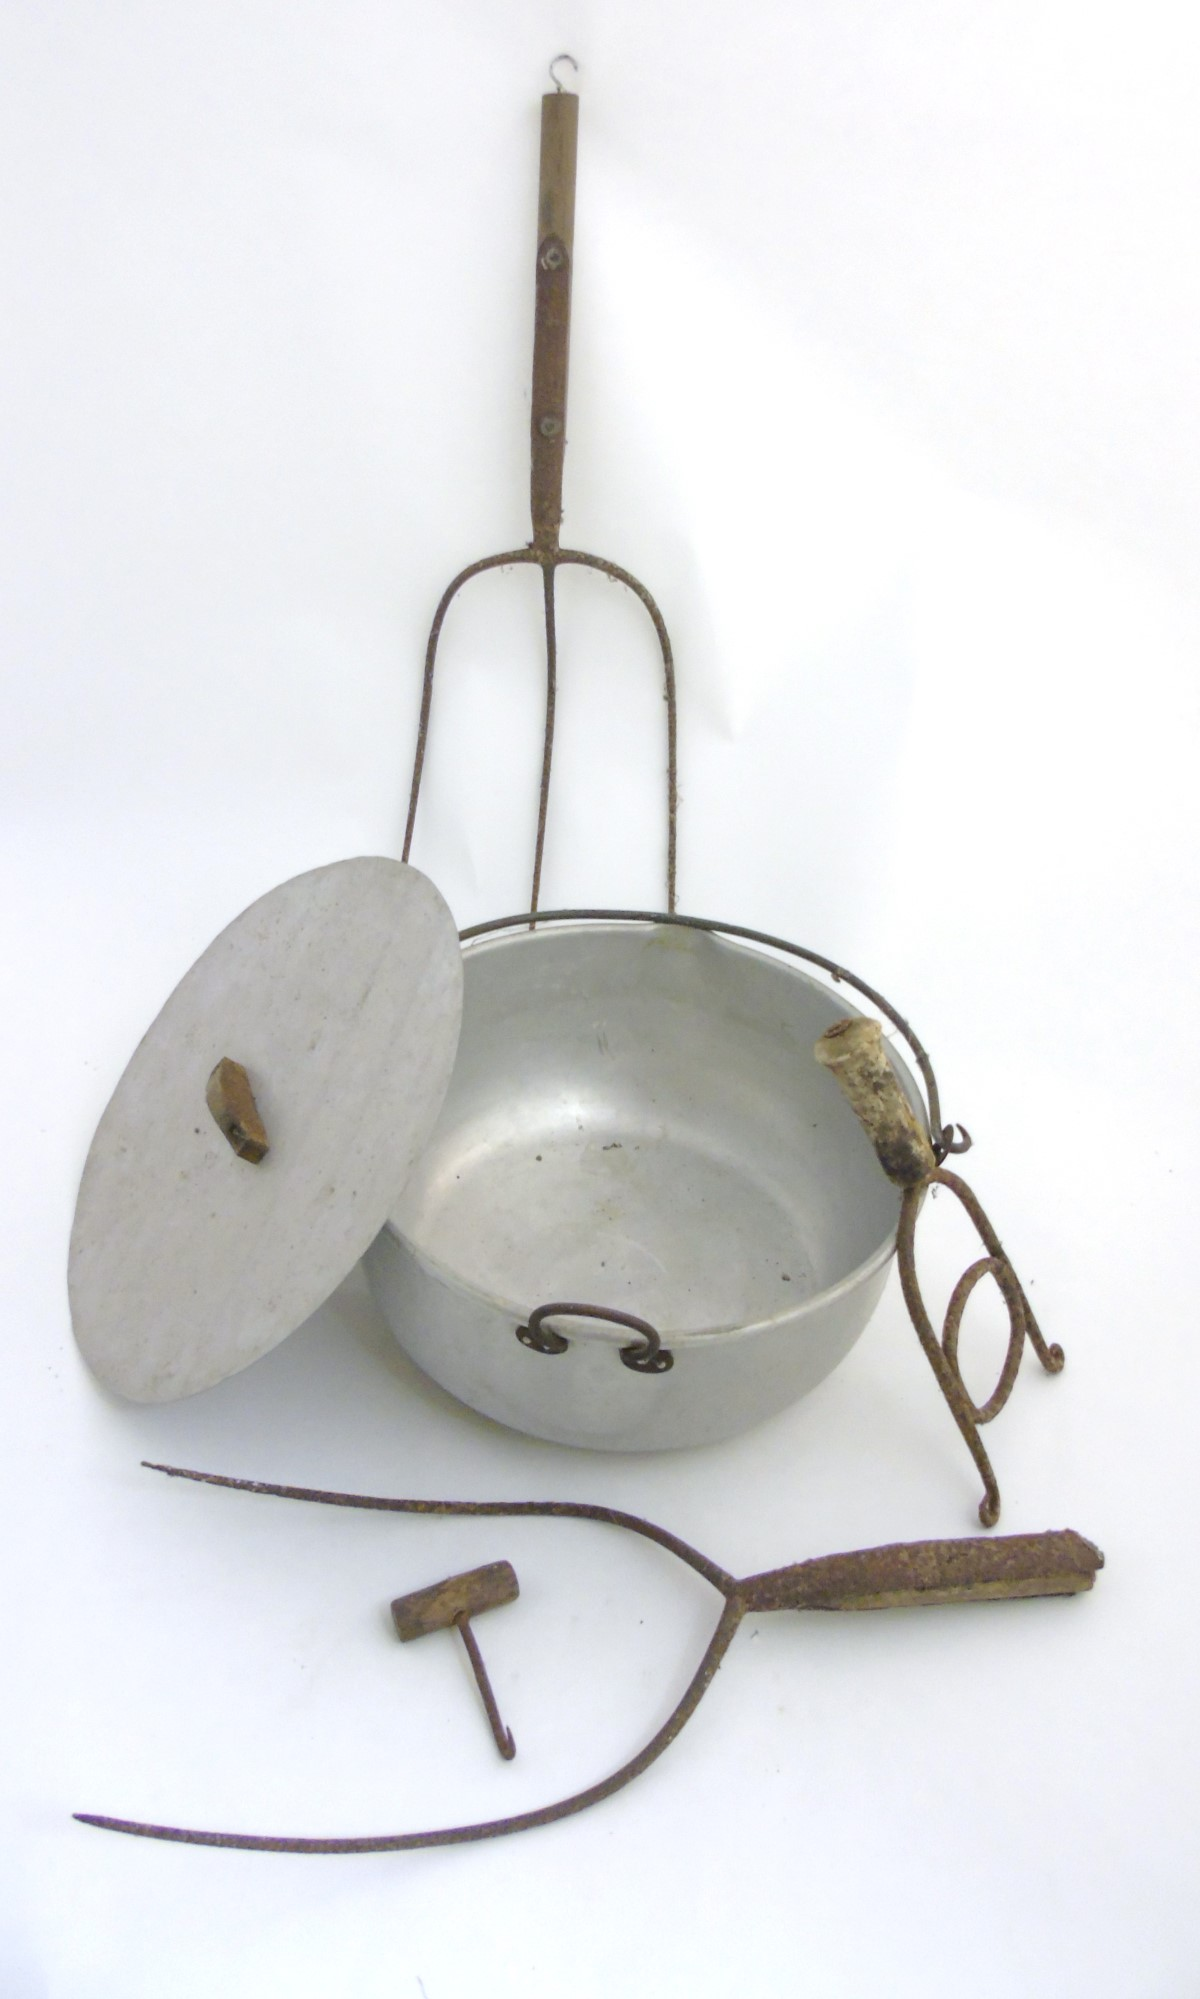 Lot 49 - Vintage Agricultural tools : A creamer with lid , wrought iron stirrer , bale / wad hook ,